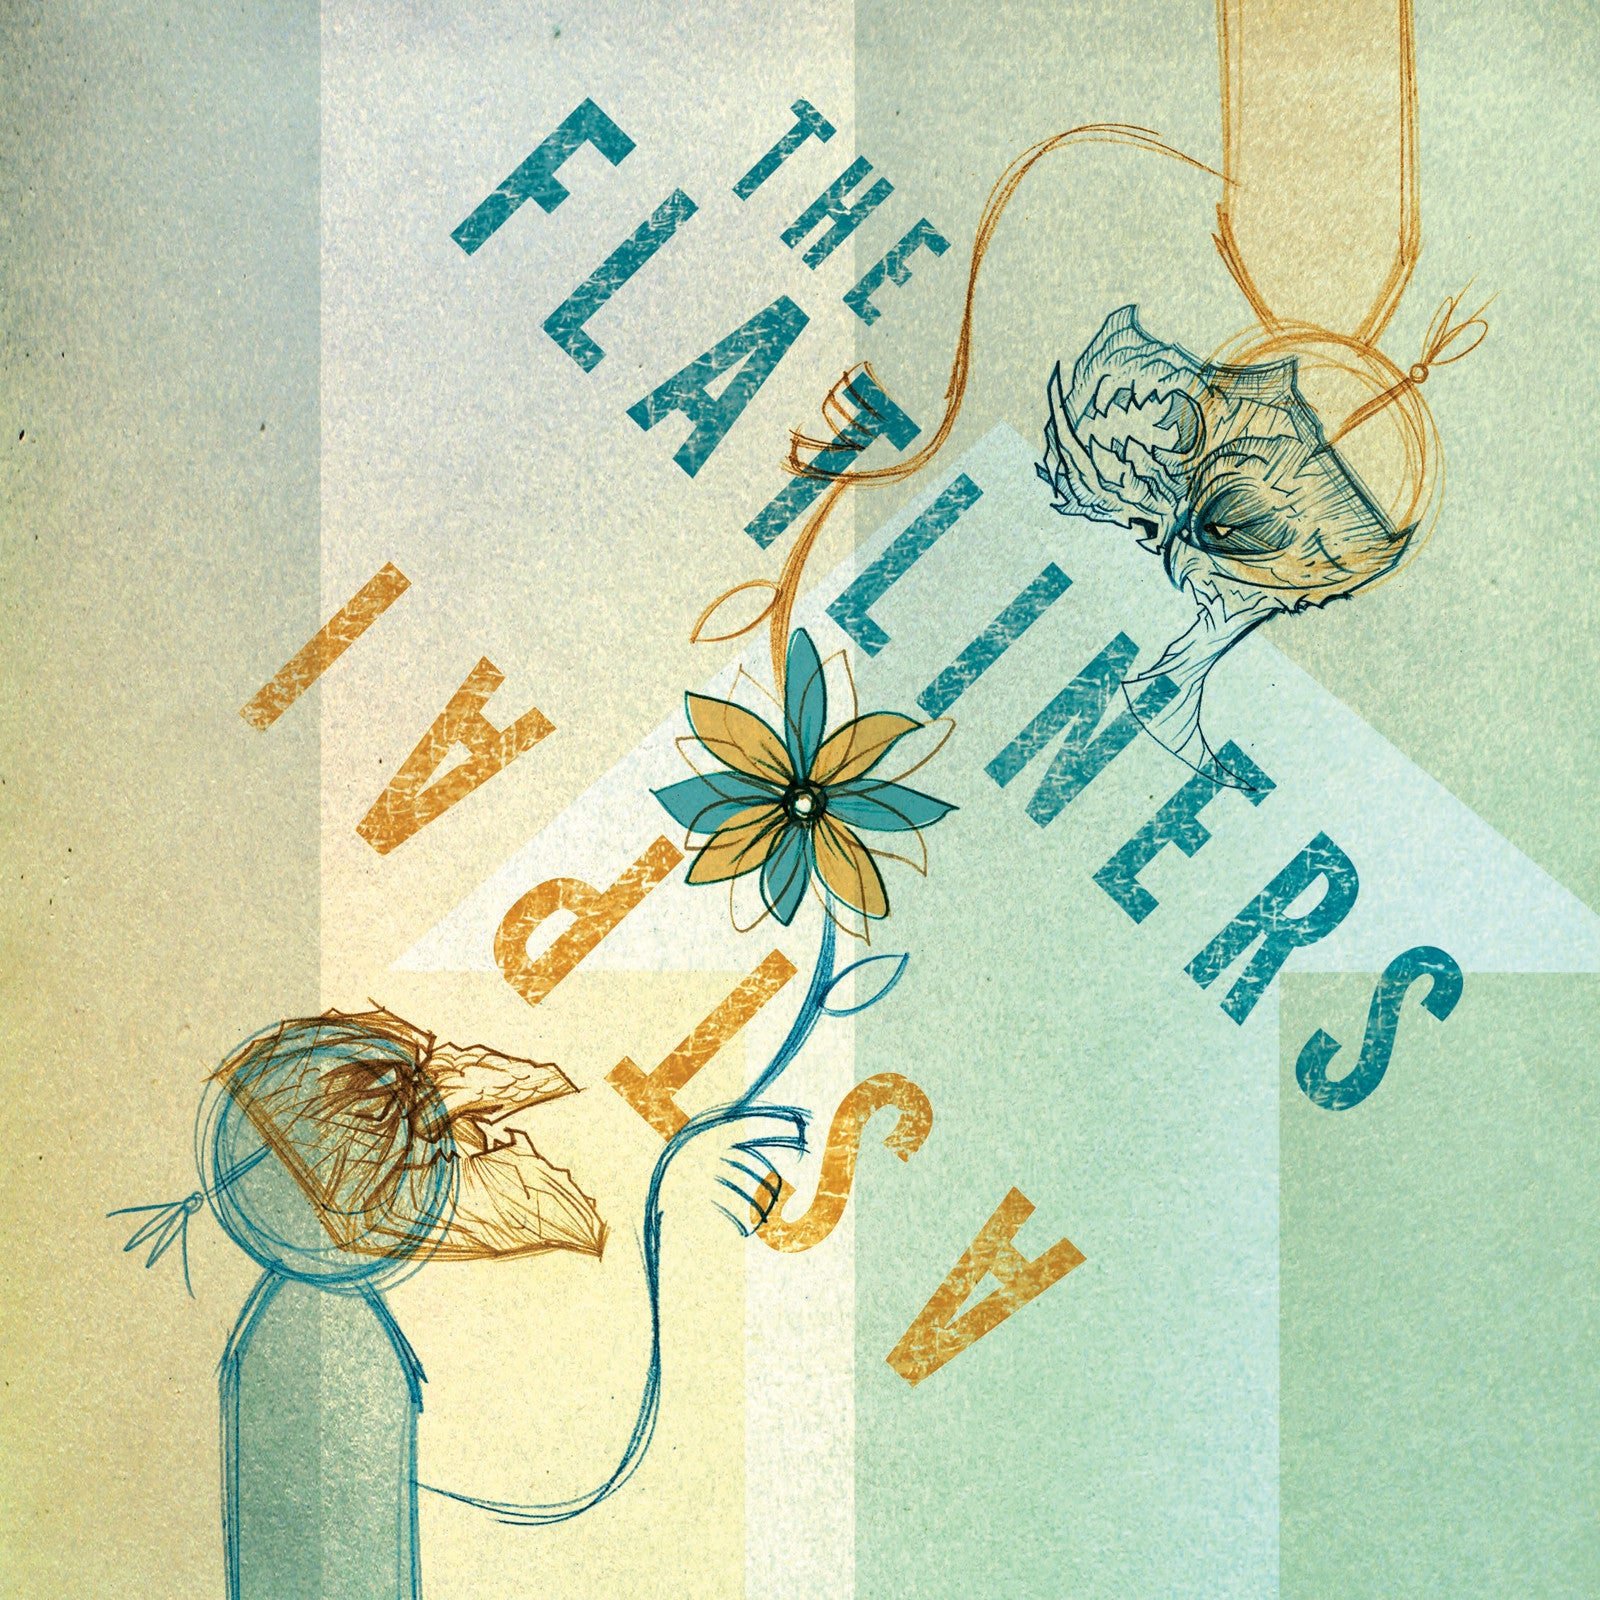 The Flatliners / Astpai Split